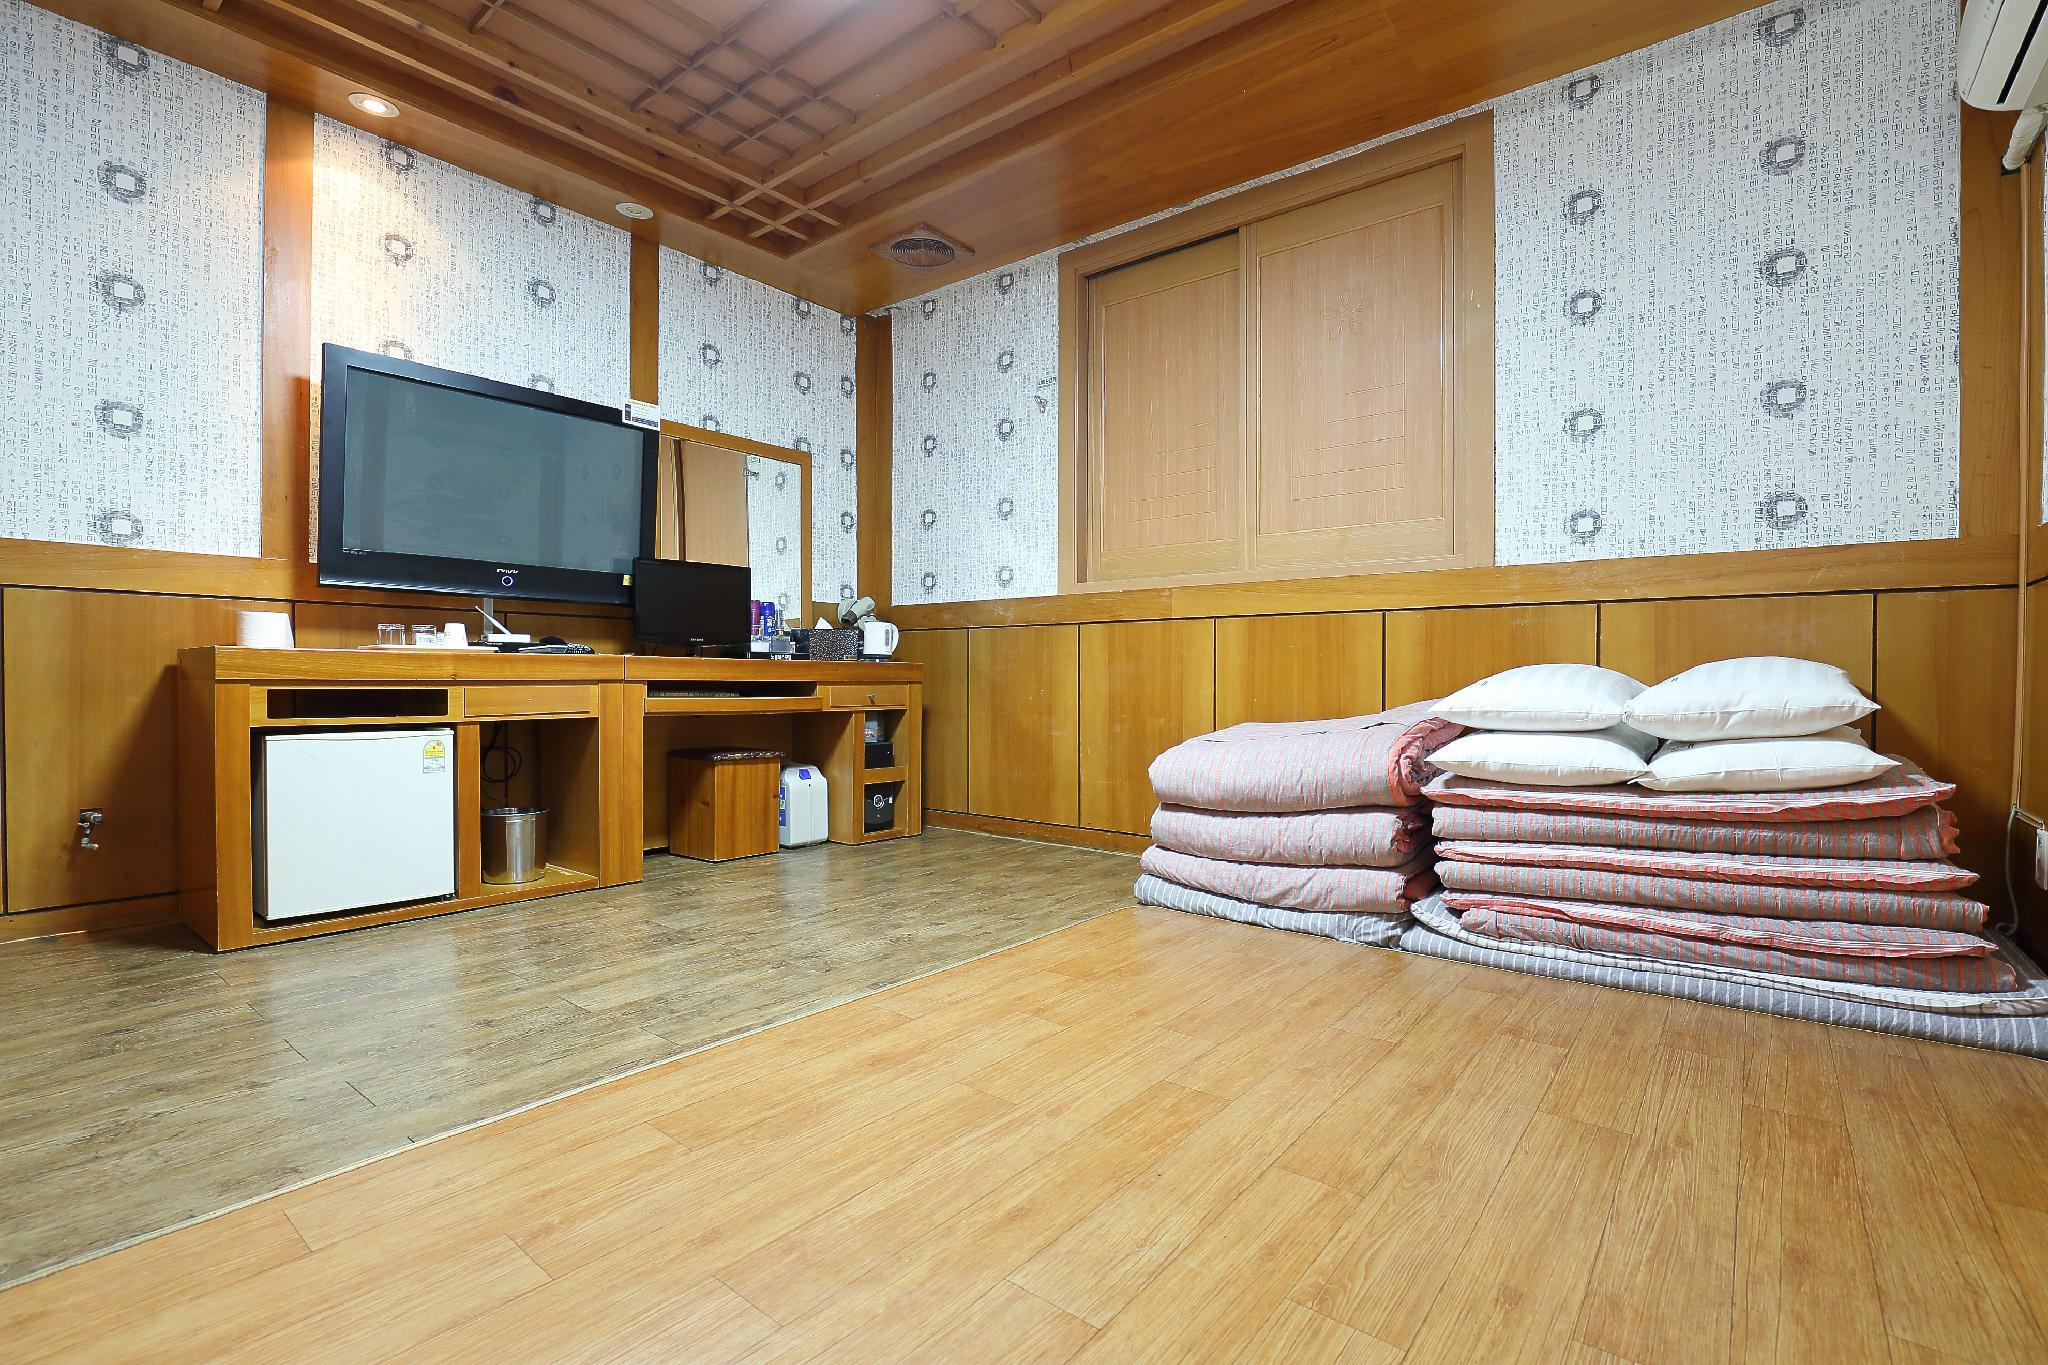 Soba s tradicionalnim korejskim ondolom (Korean Traditional Ondol Room)